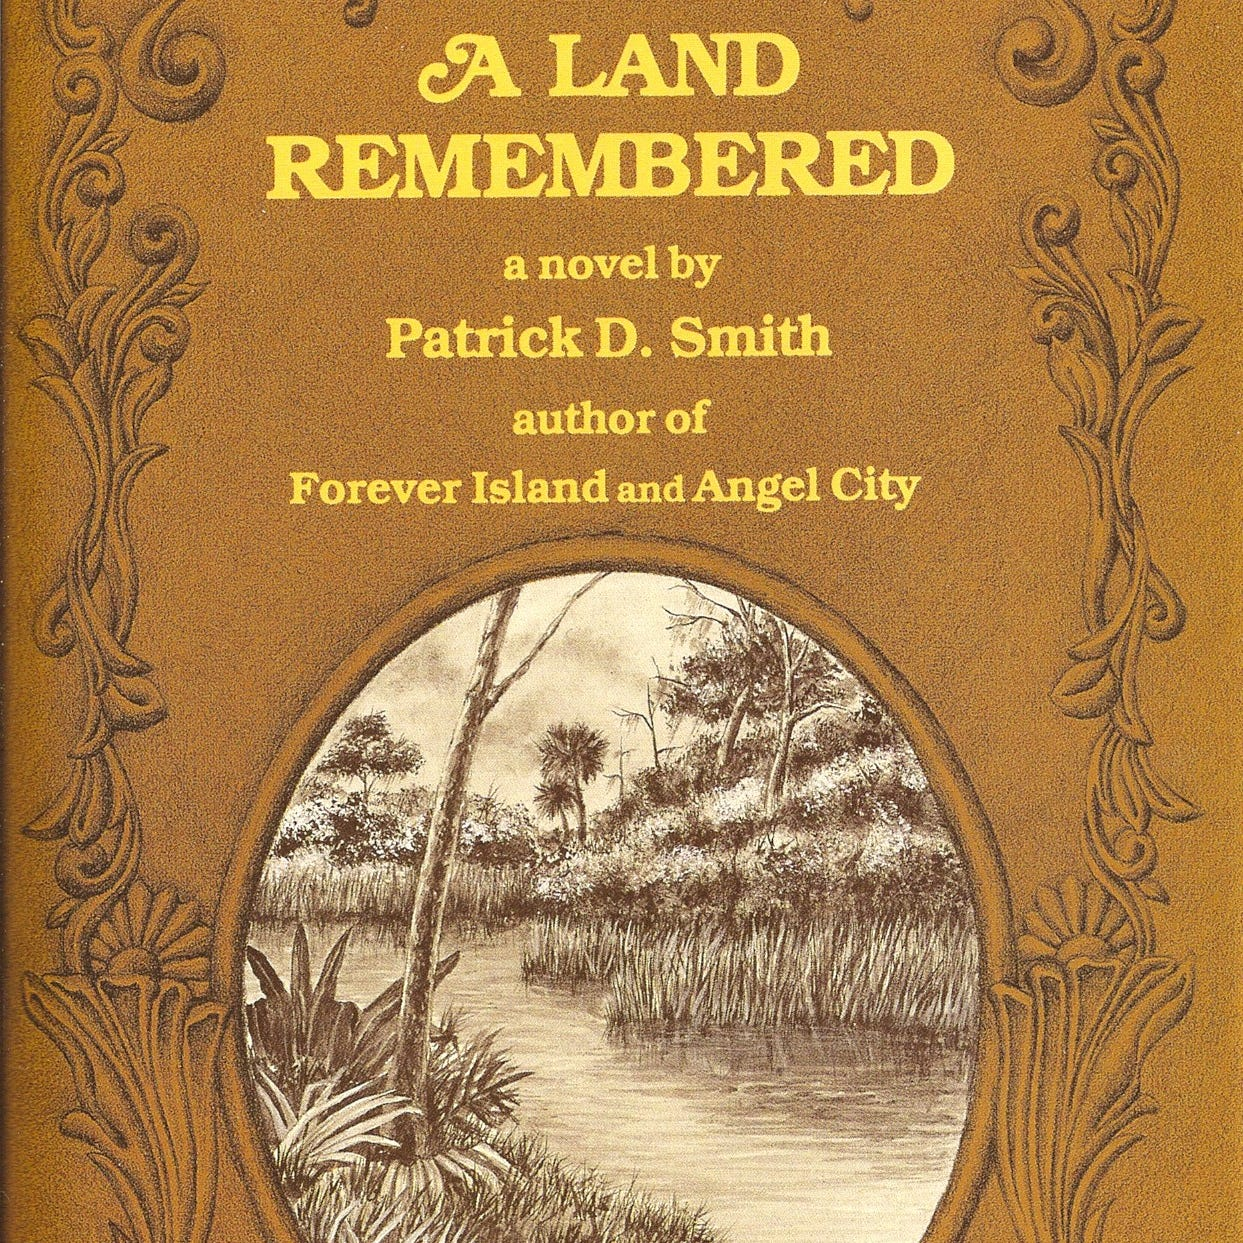 'A Land Remembered' will come to life as author's son visits Treasure Coast